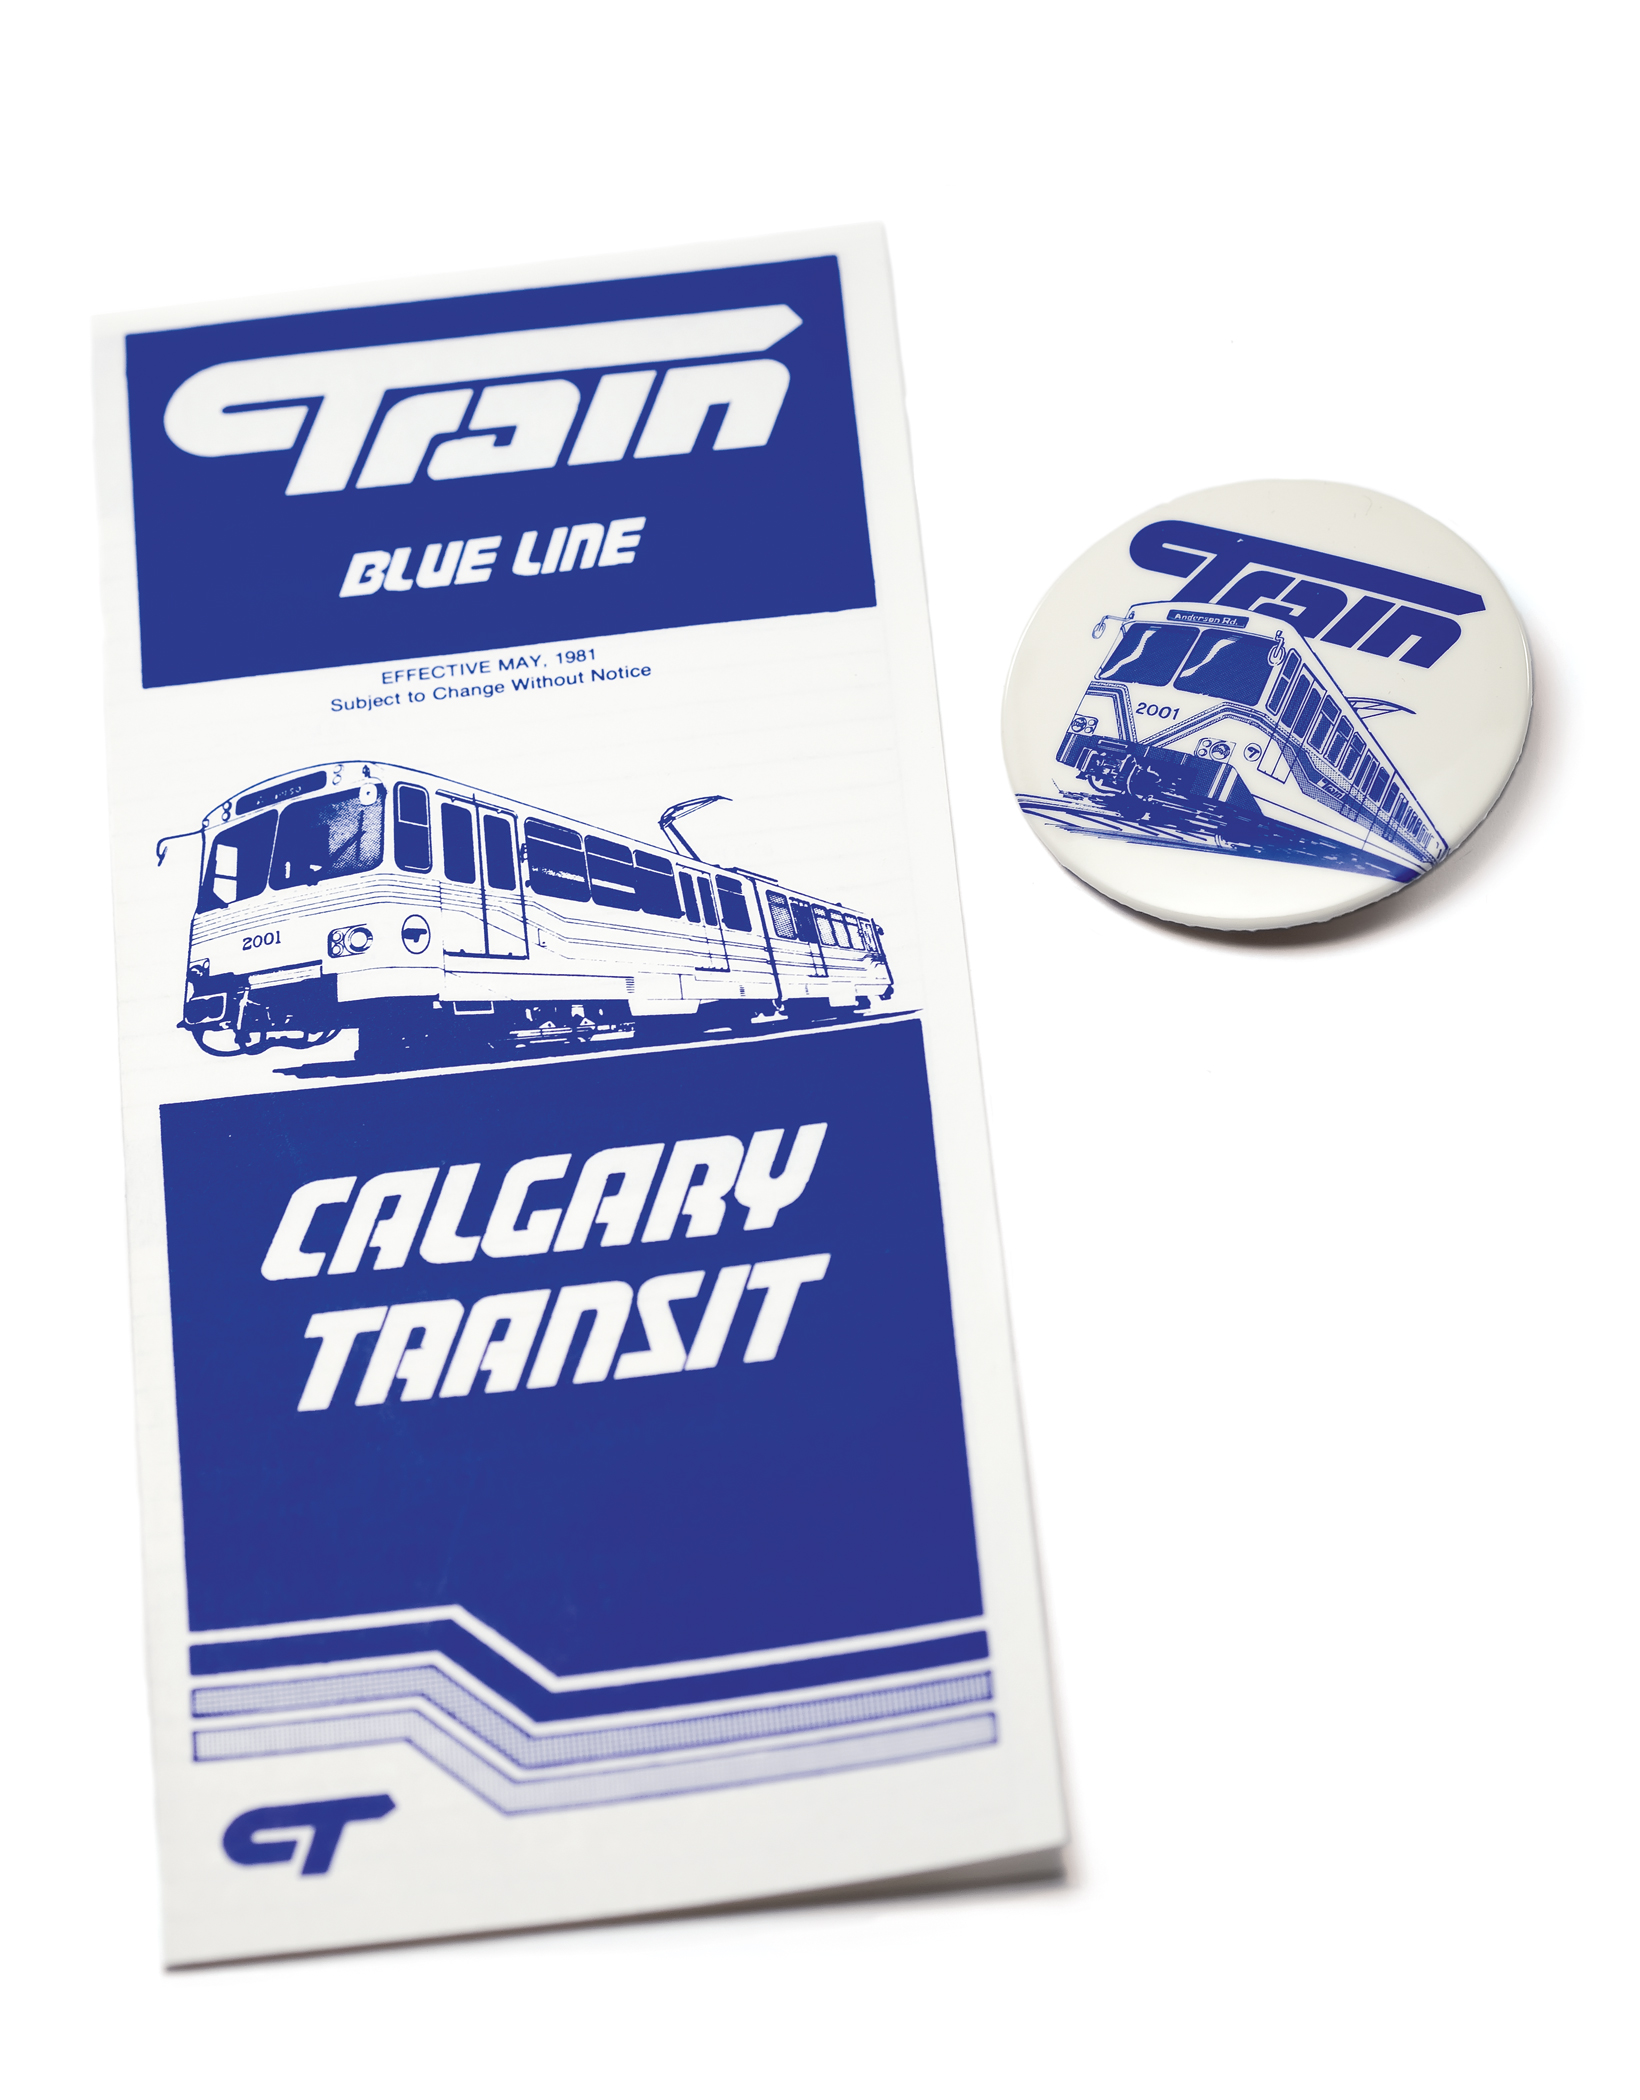 CTrain Timetable and promotional material, Calgary, 1981